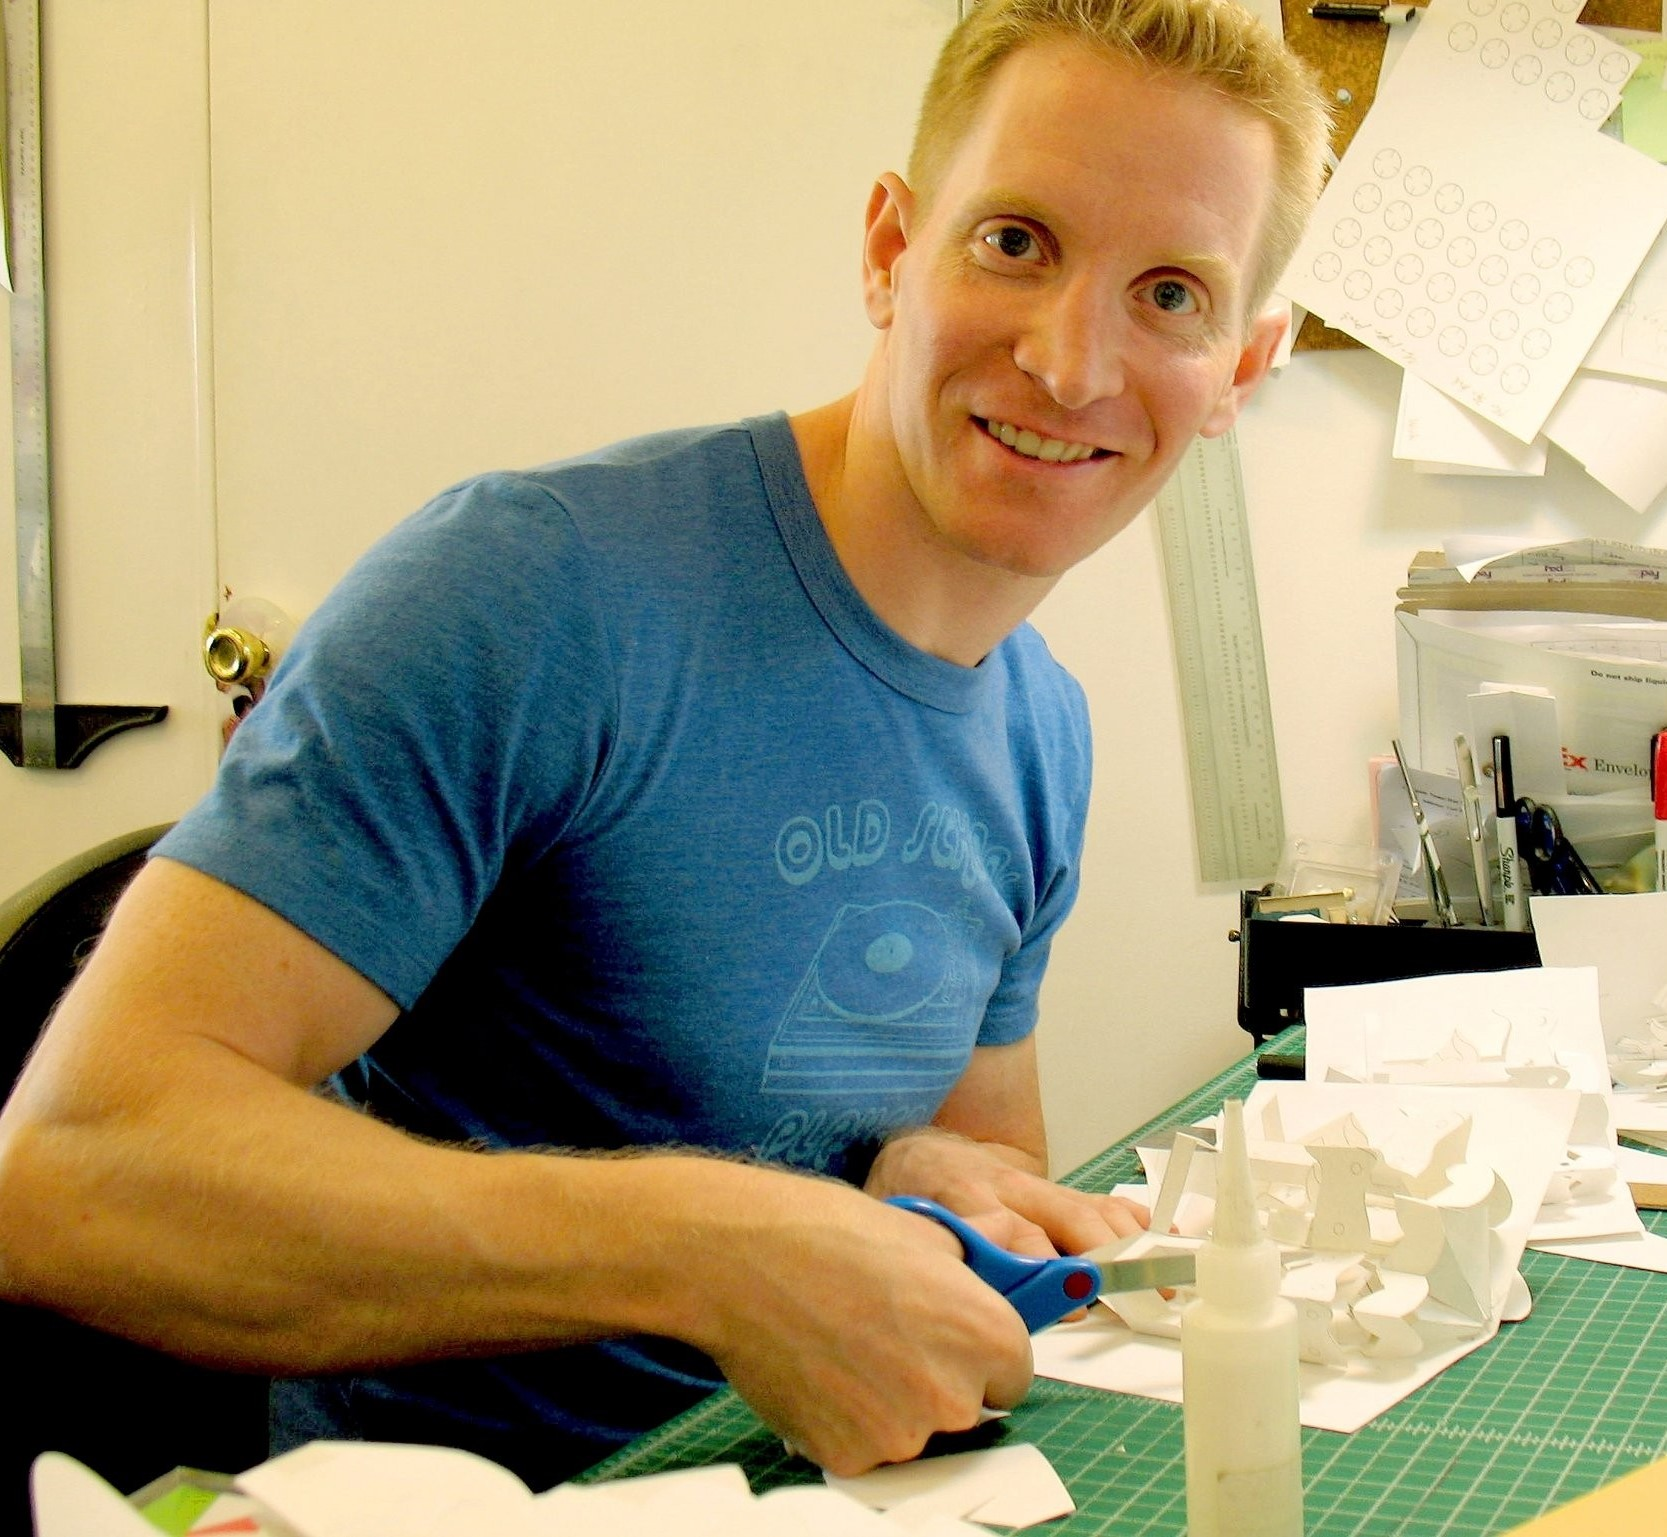 Paper Engineer, Robert Sabuda, sitting at his desk cutting a pop-up mock-up